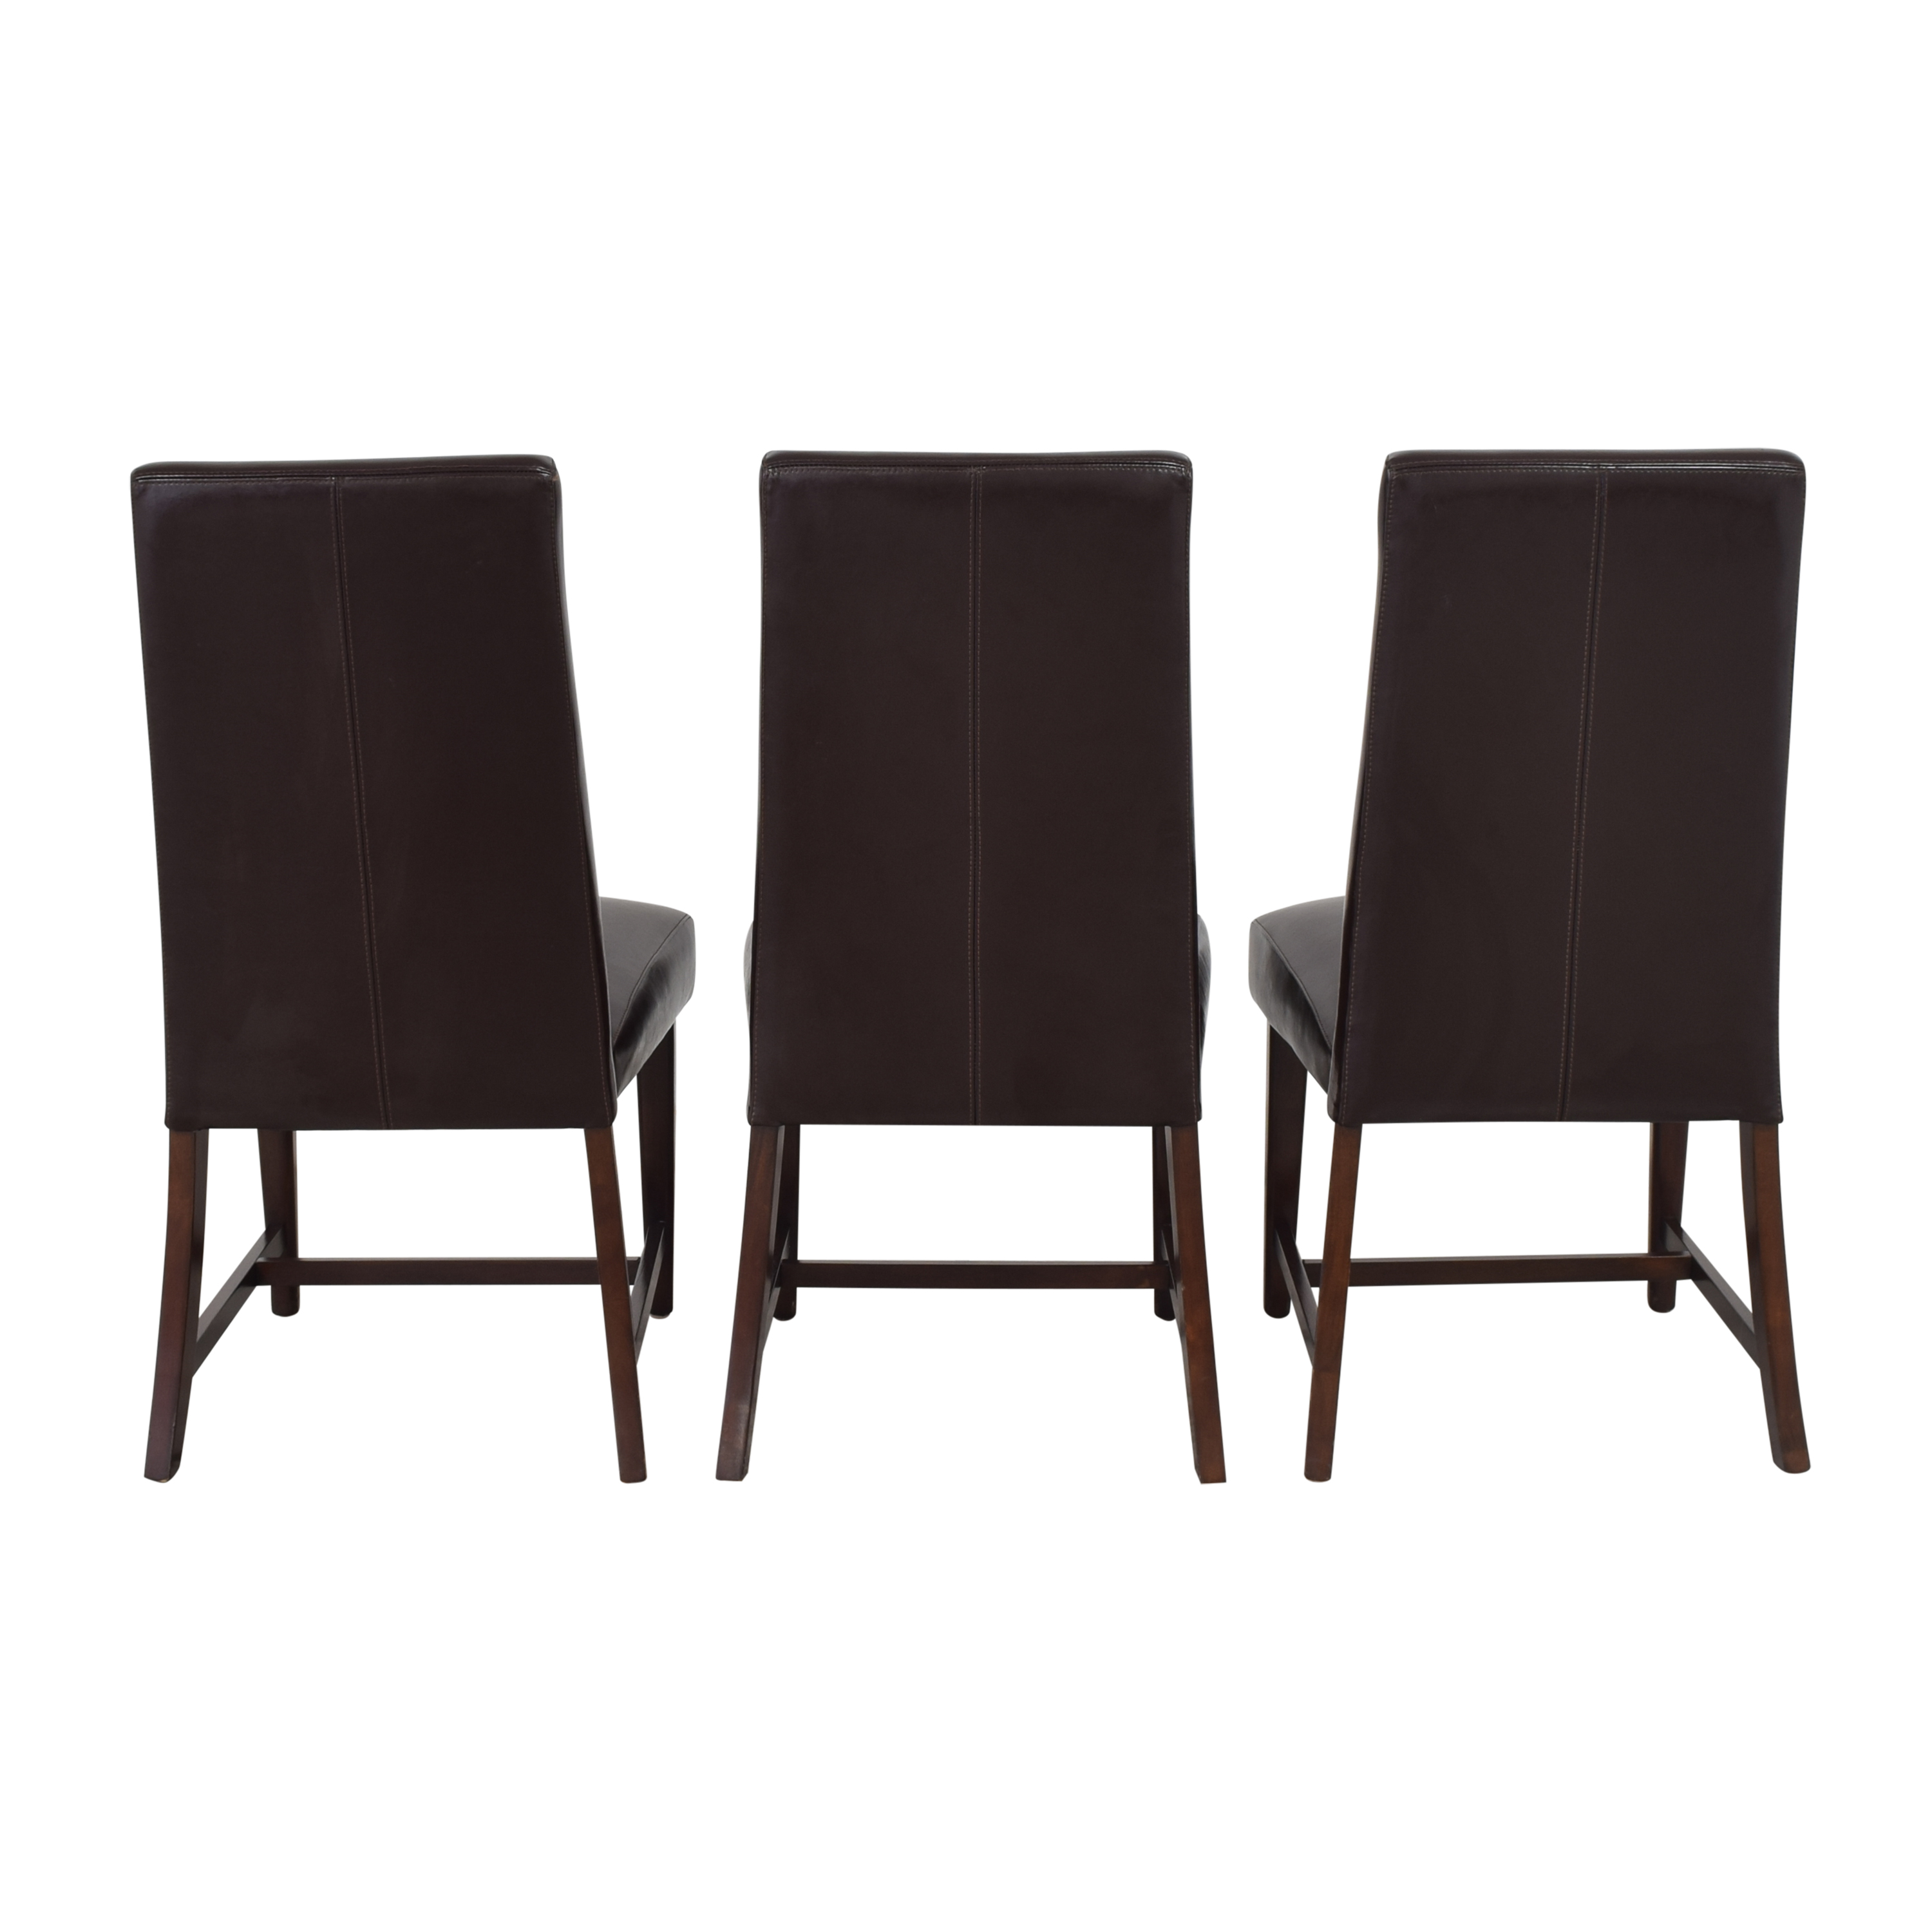 Shermag Shermag High Back Dining Chairs second hand